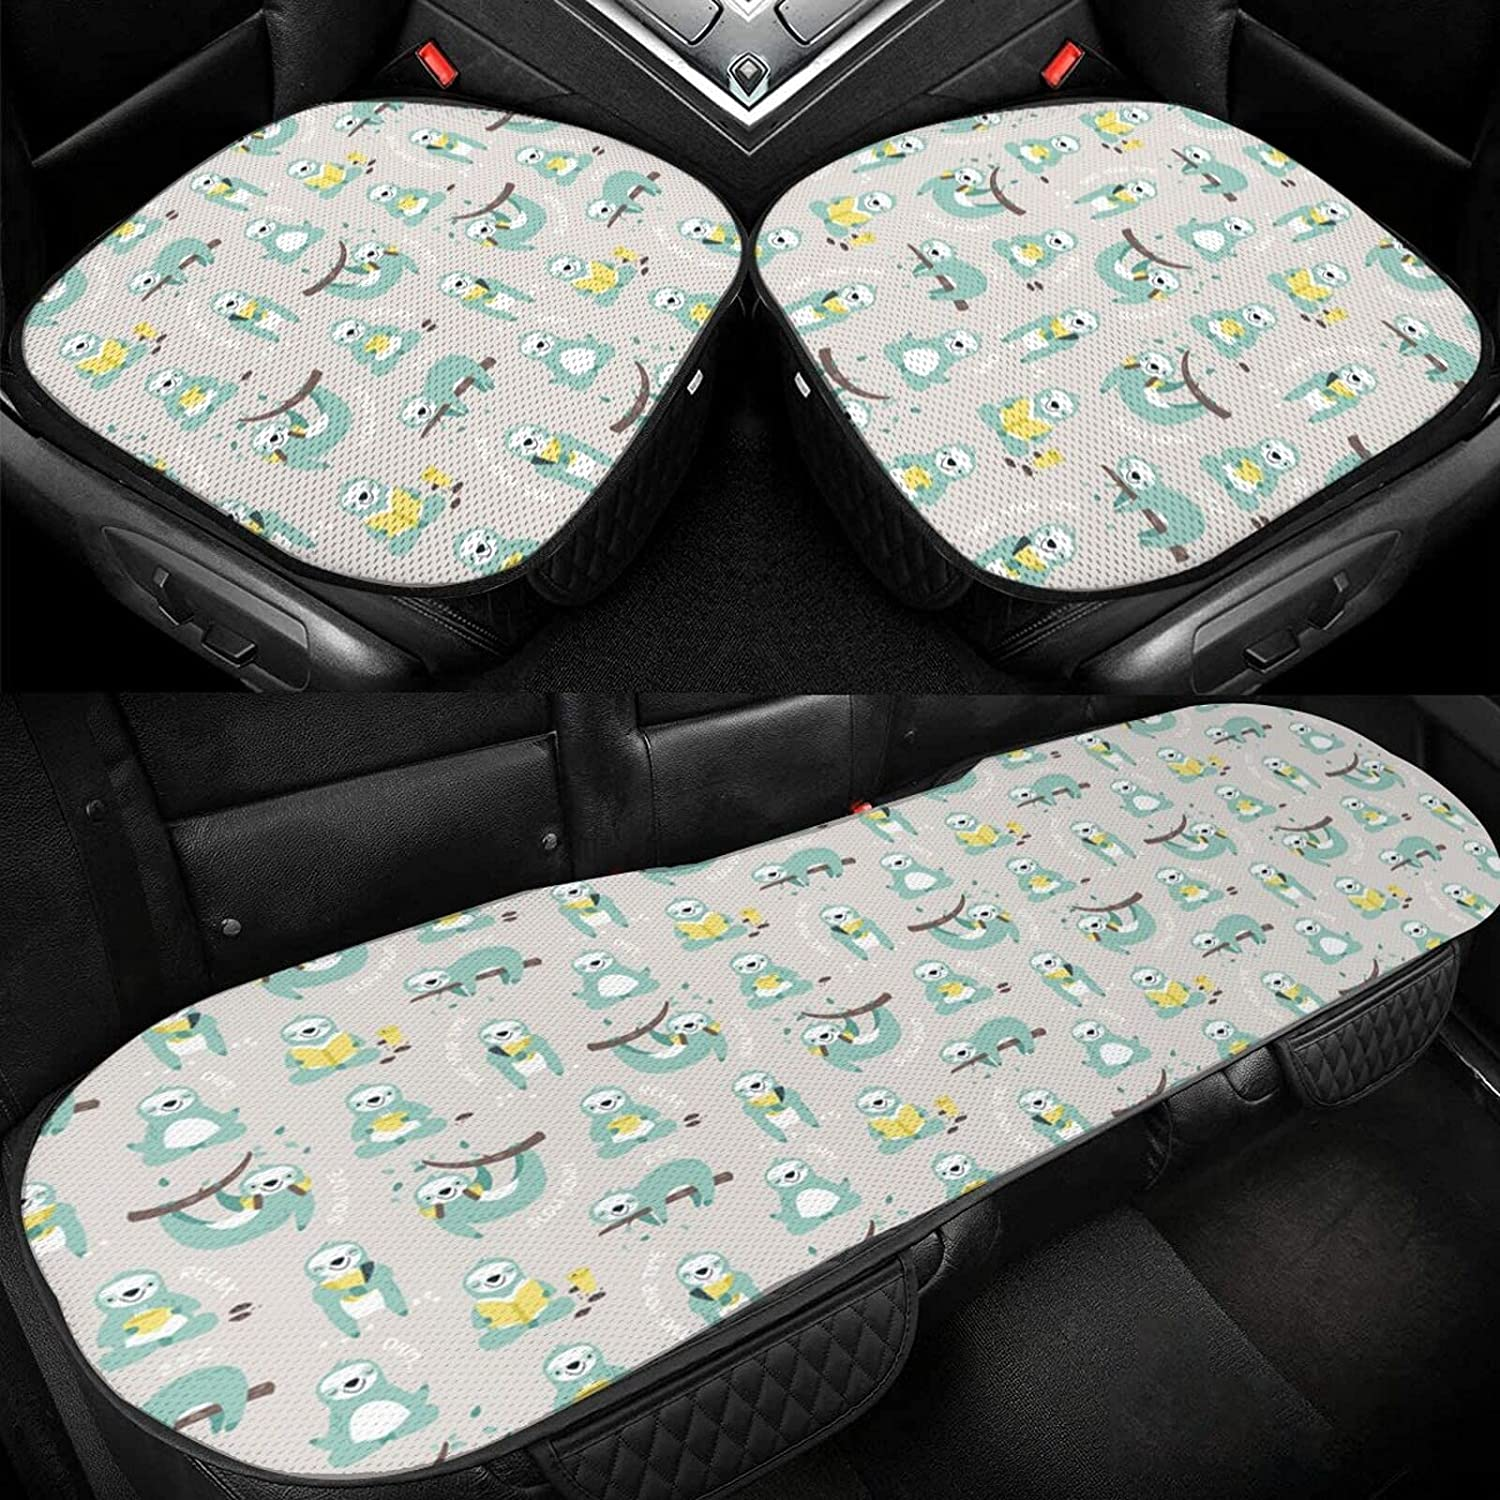 Cute Sloths Car Oakland Mall Be super welcome Seat Cushion Driver Silk Cover Pad Ice